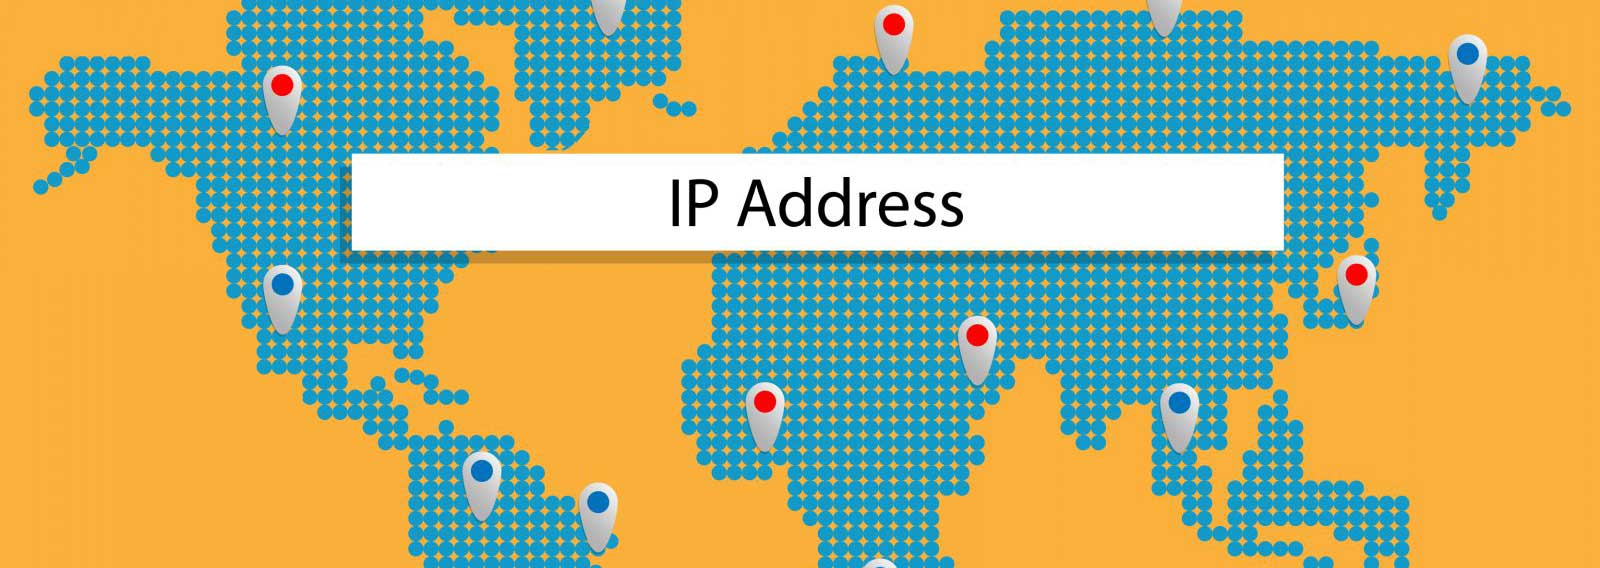 How Does IP Addresses Work? – Infographic